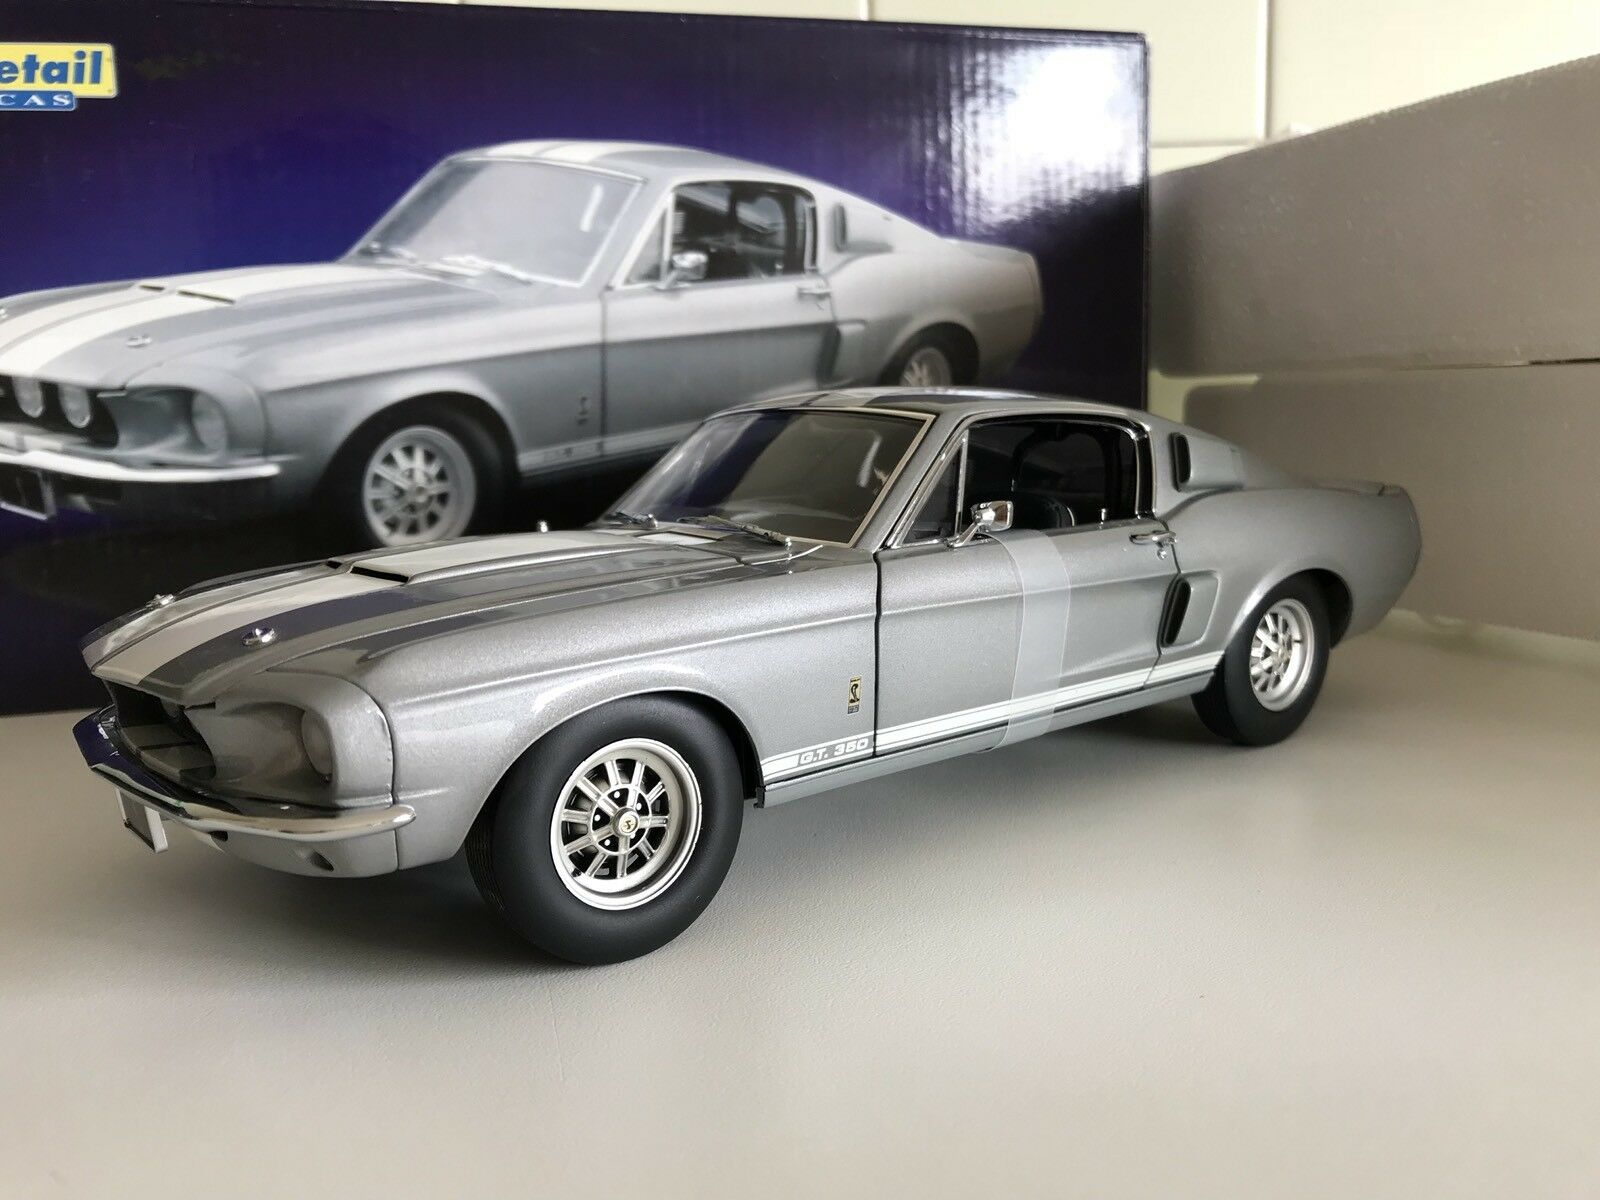 1/18 Exact Detail Ford Mustang GT 350 Shelby RARE No Autoart